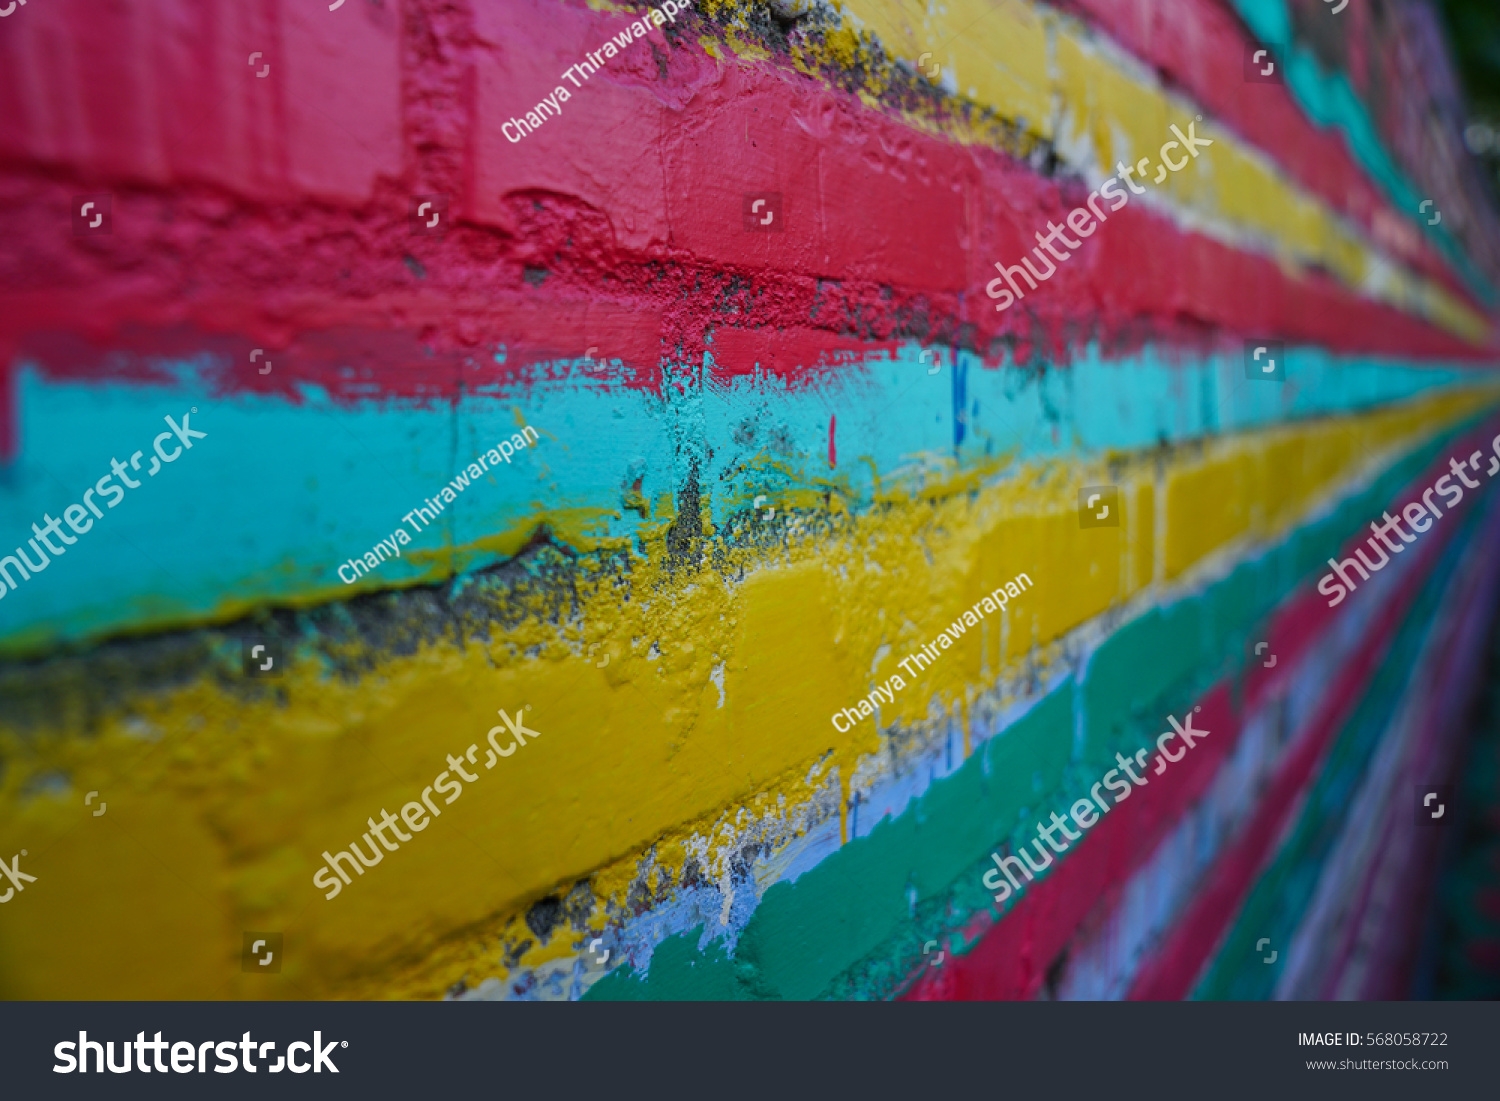 Old Wall Painted Bright Rainbow Colors Stock Photo 568058722 ...